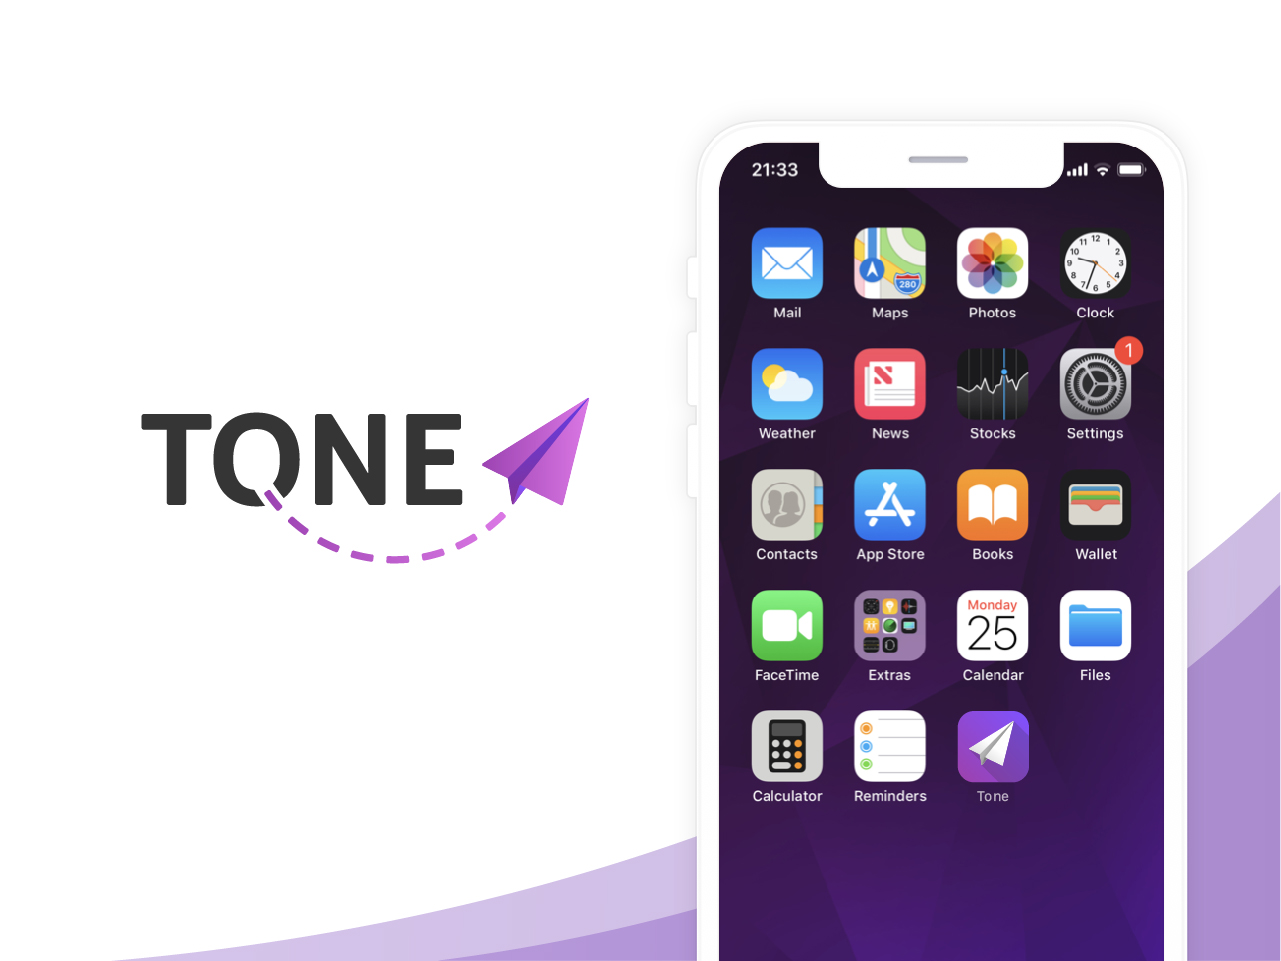 Image with a logo variant 1 for an app called Tone